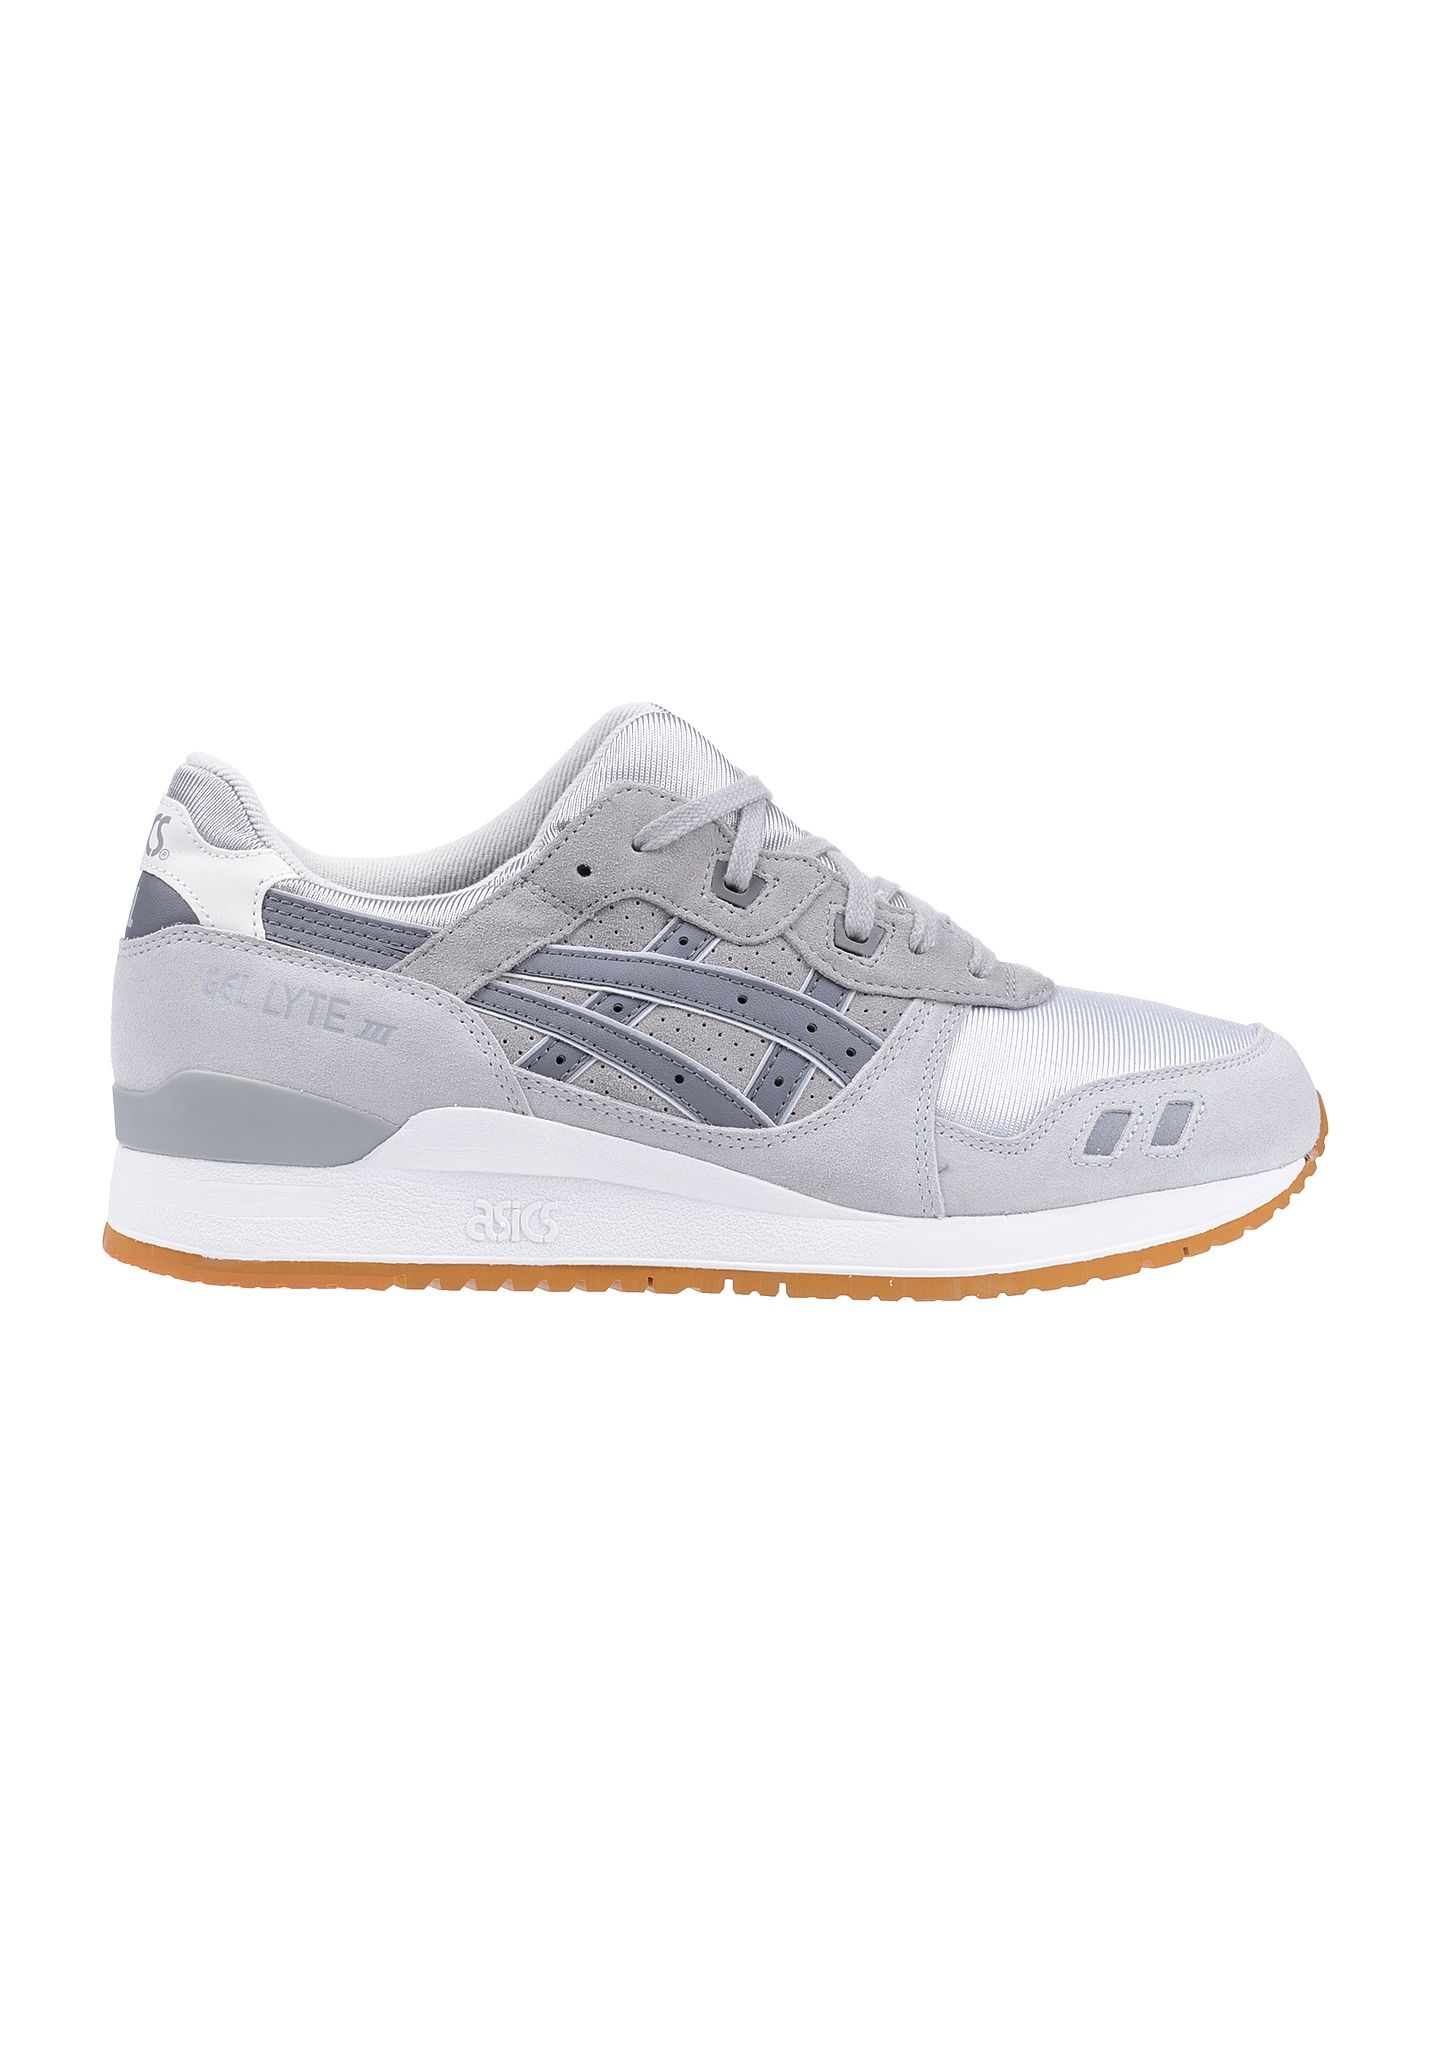 Chaussures Asics Gel Lyte grises femme